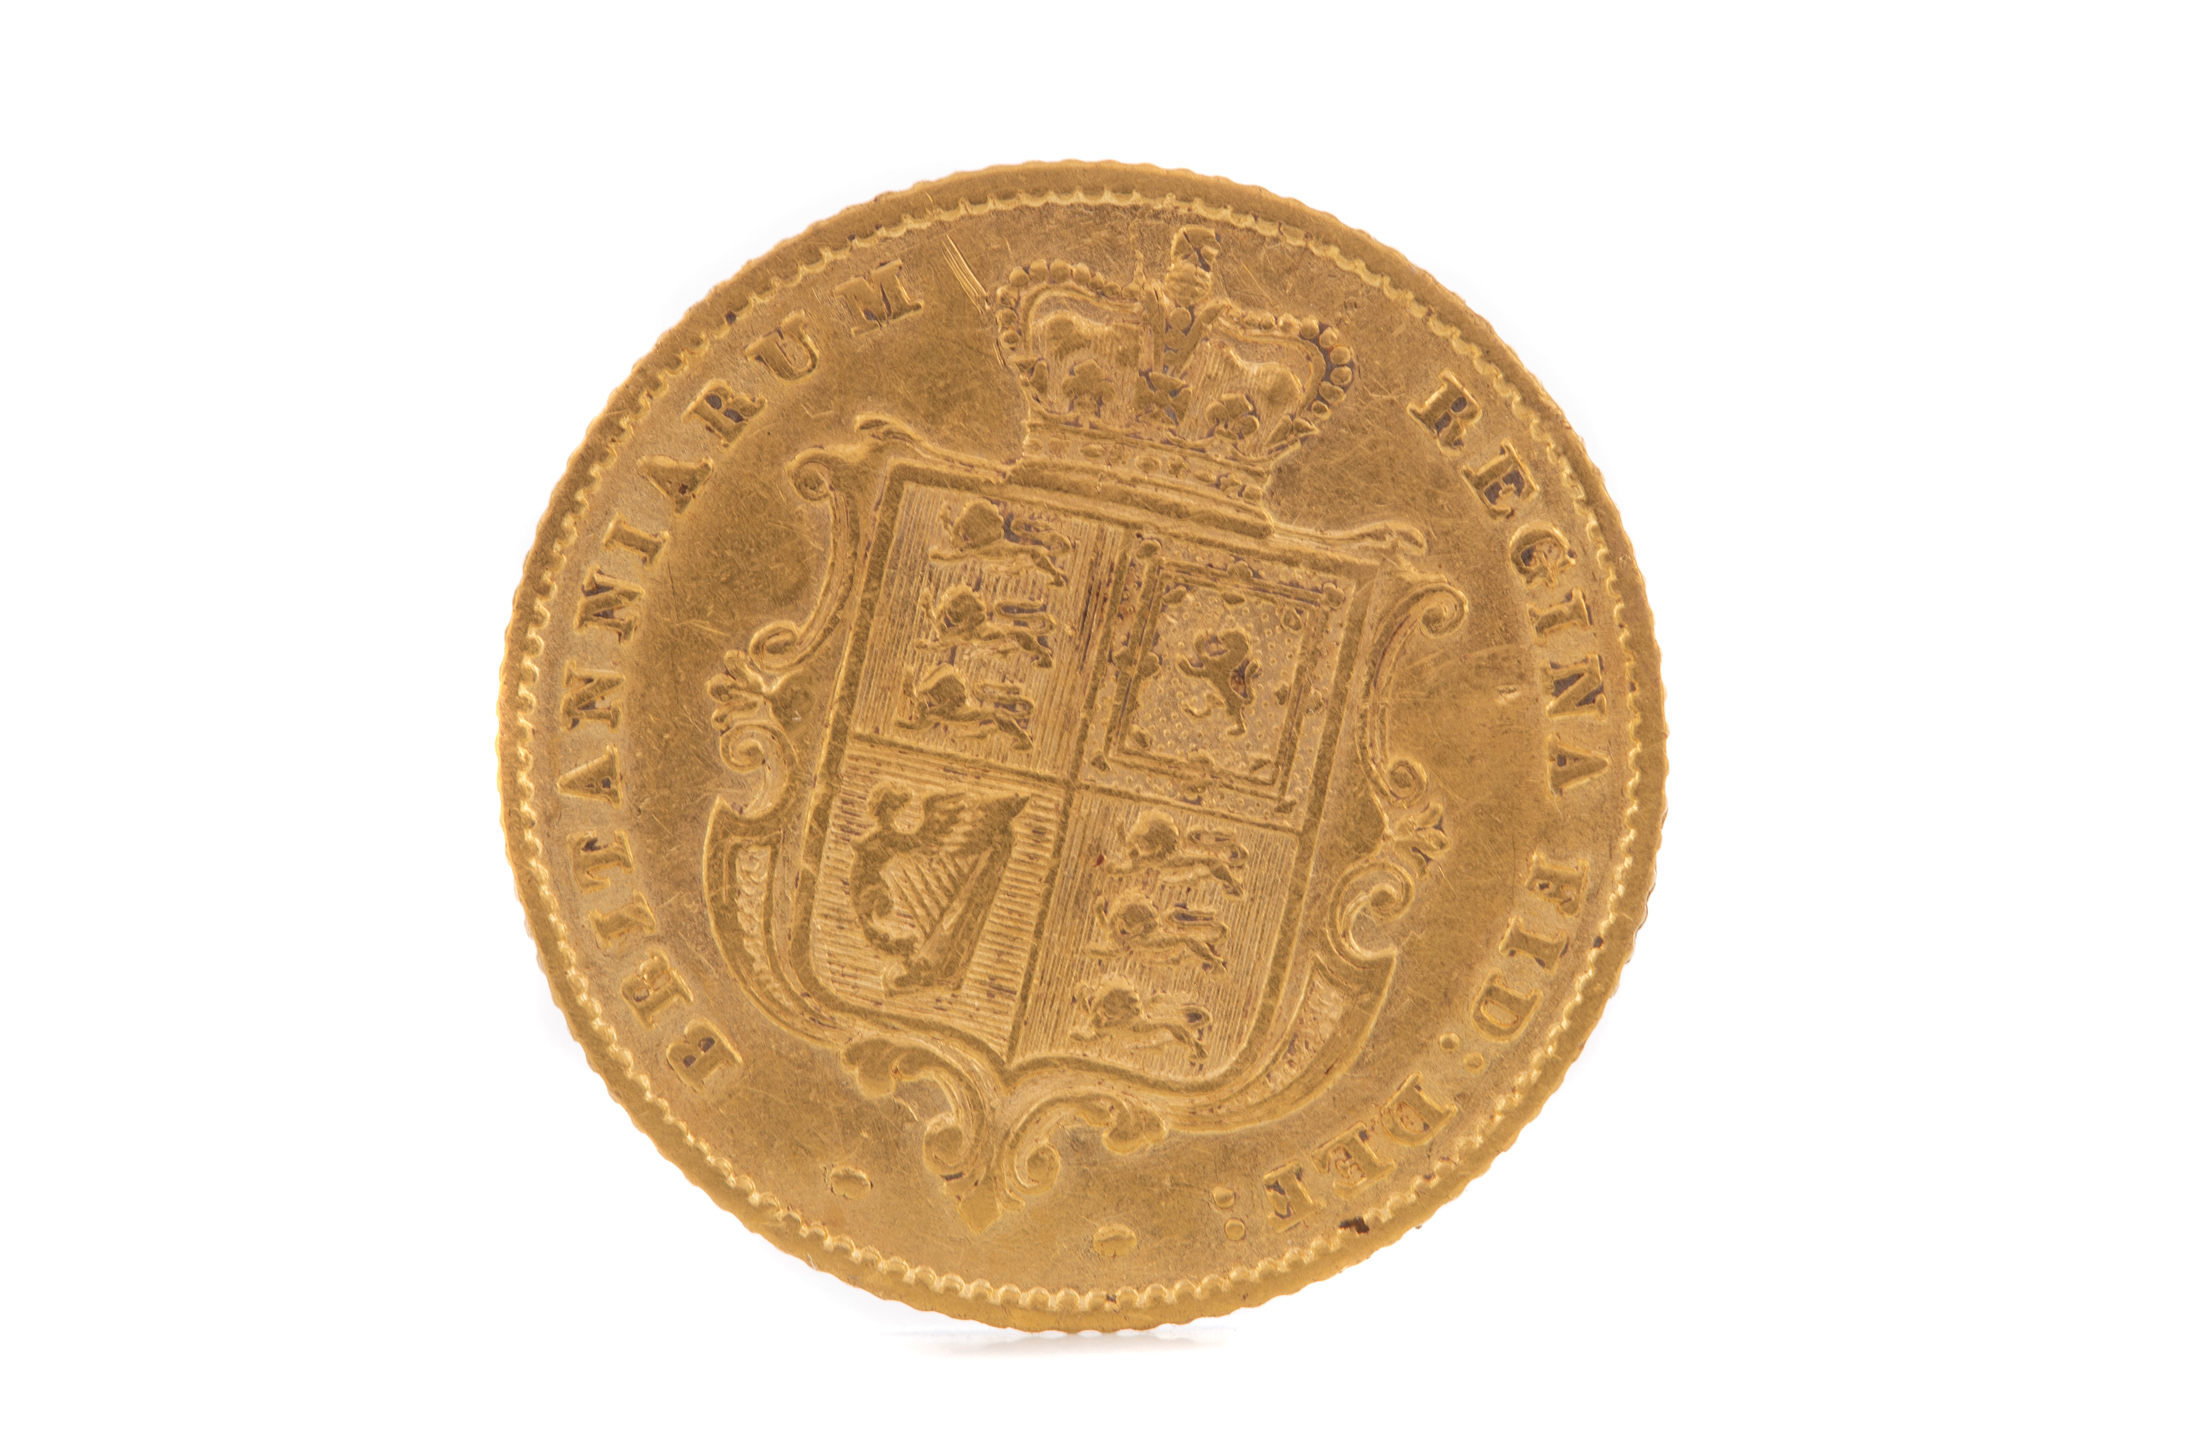 A VICTORIA GOLD HALF SOVEREIGN DATED 1853